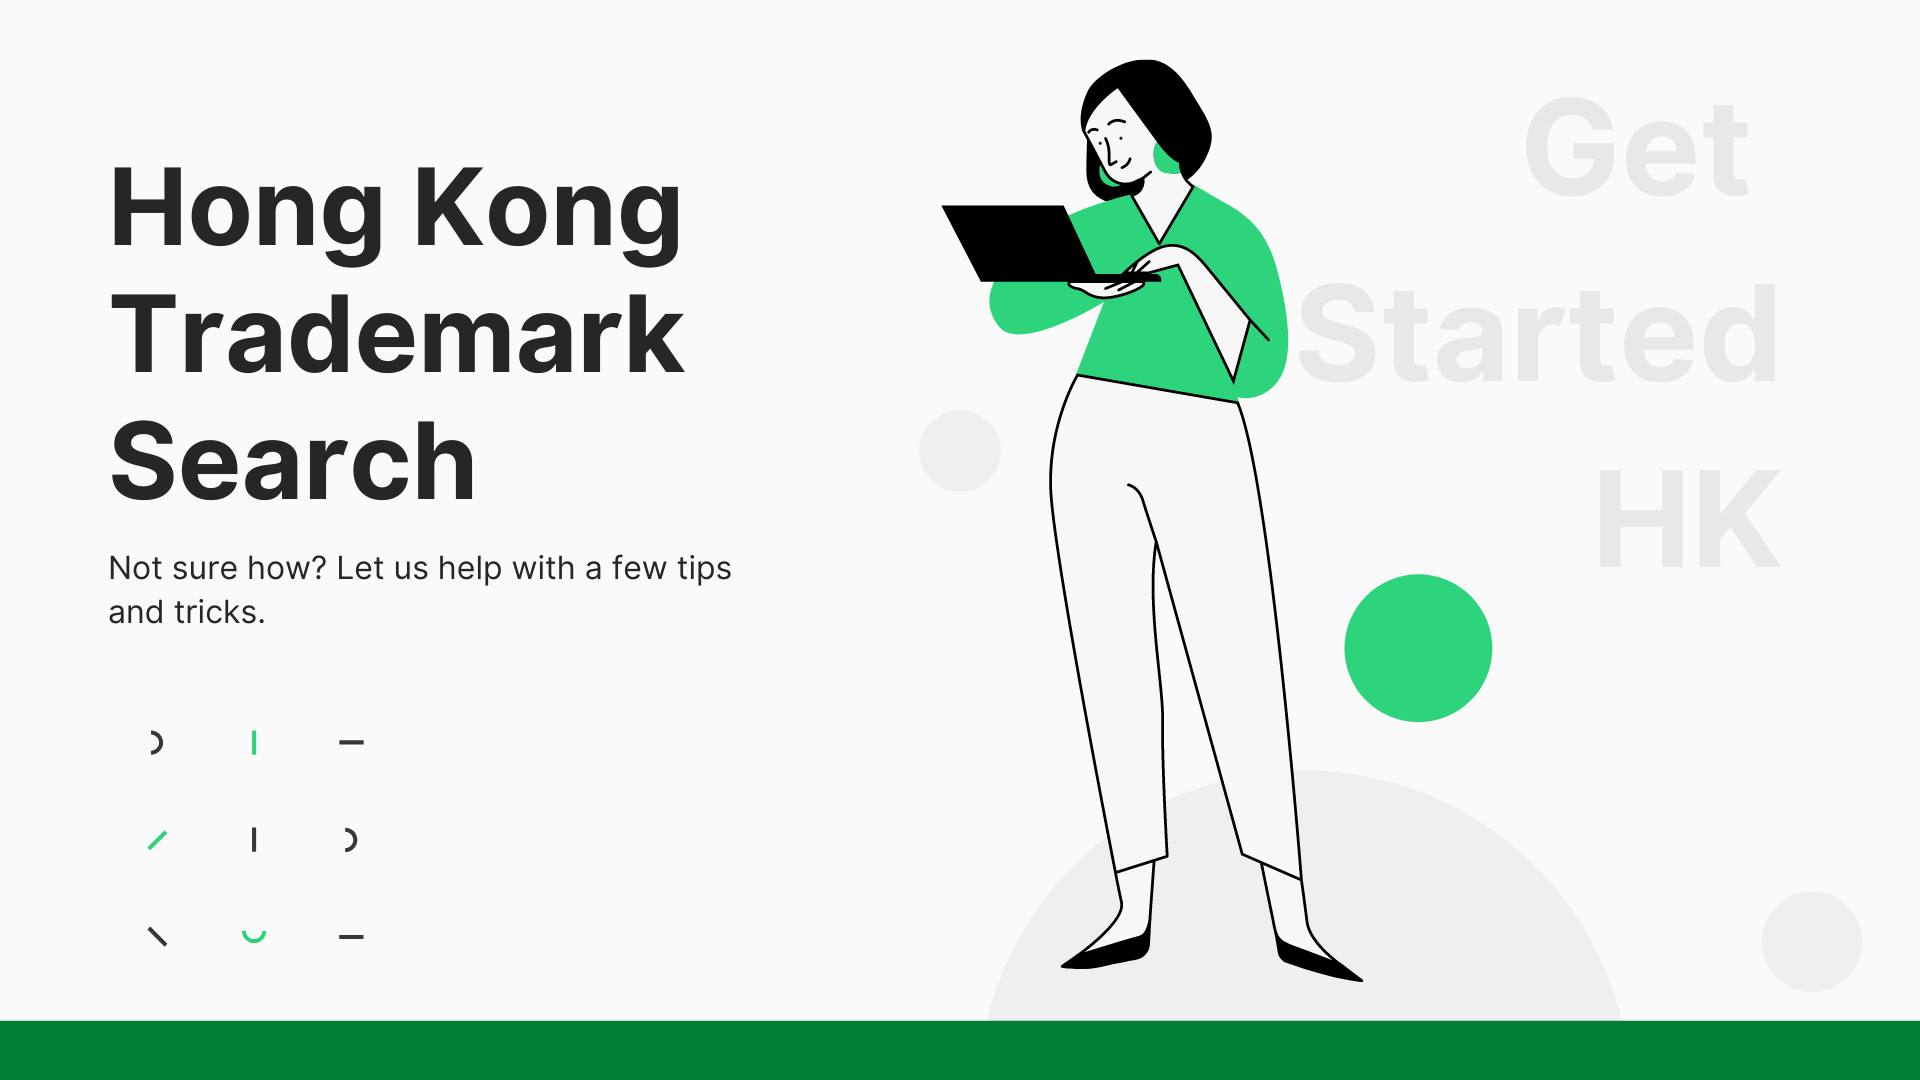 How to conduct a Hong Kong Trademark Search